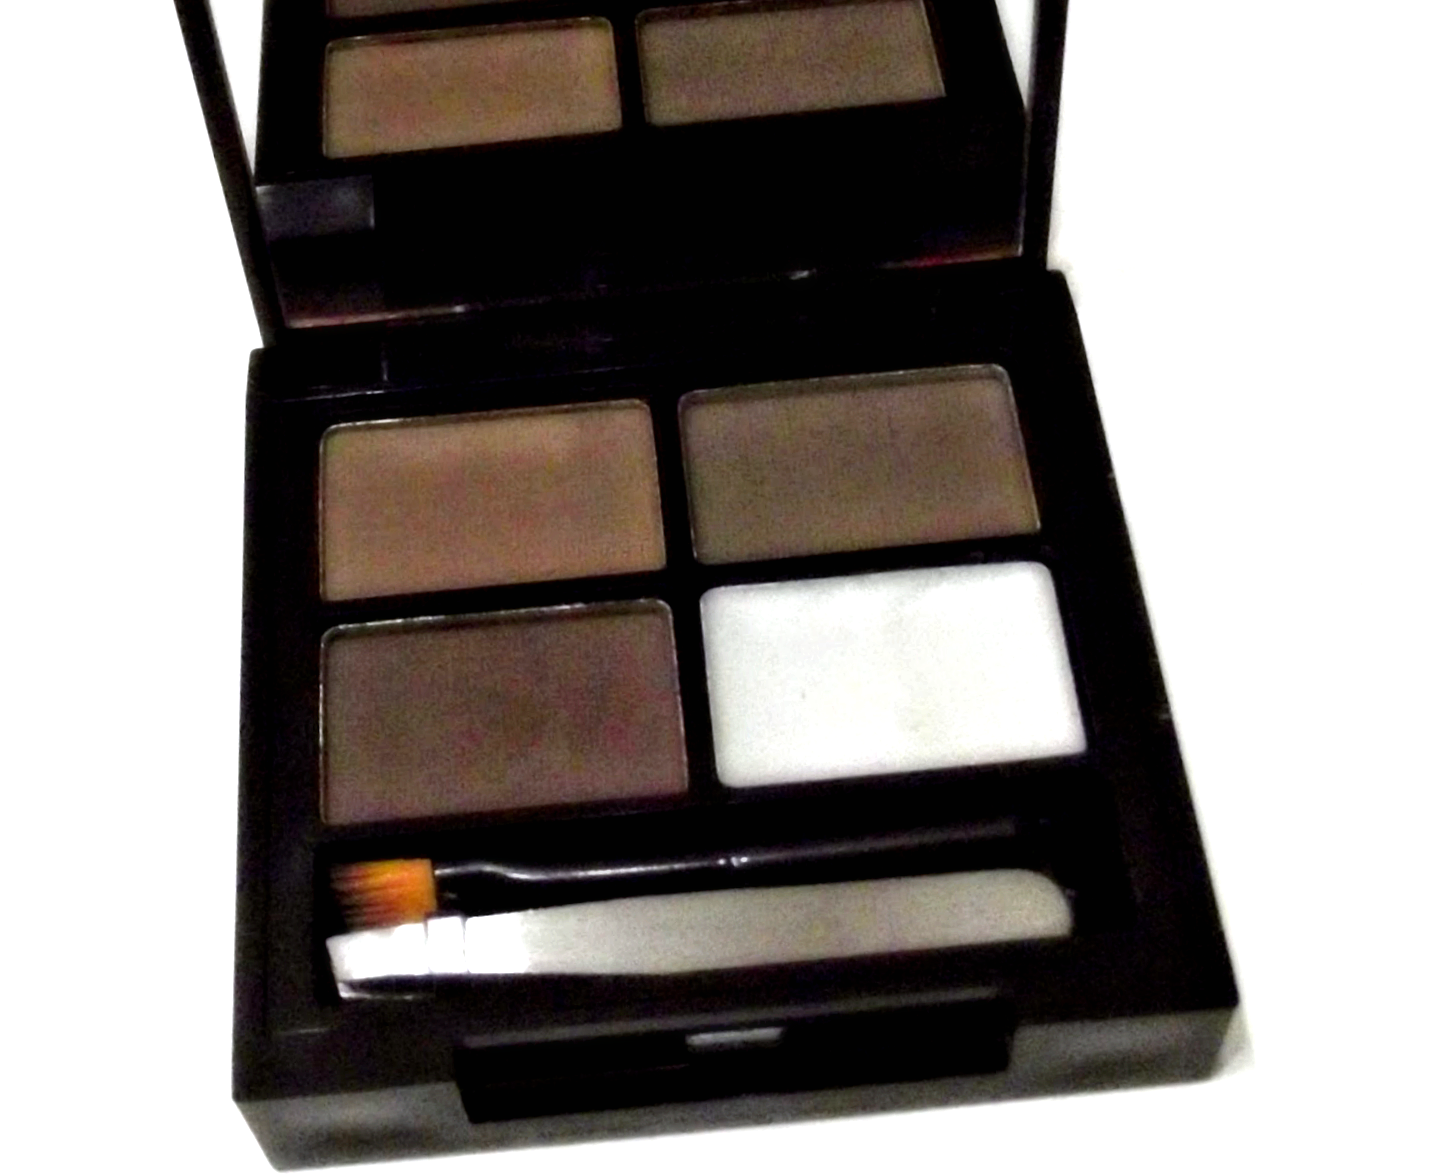 Review Makeup Revolution Focus Fix Eyebrow Shaping Kit